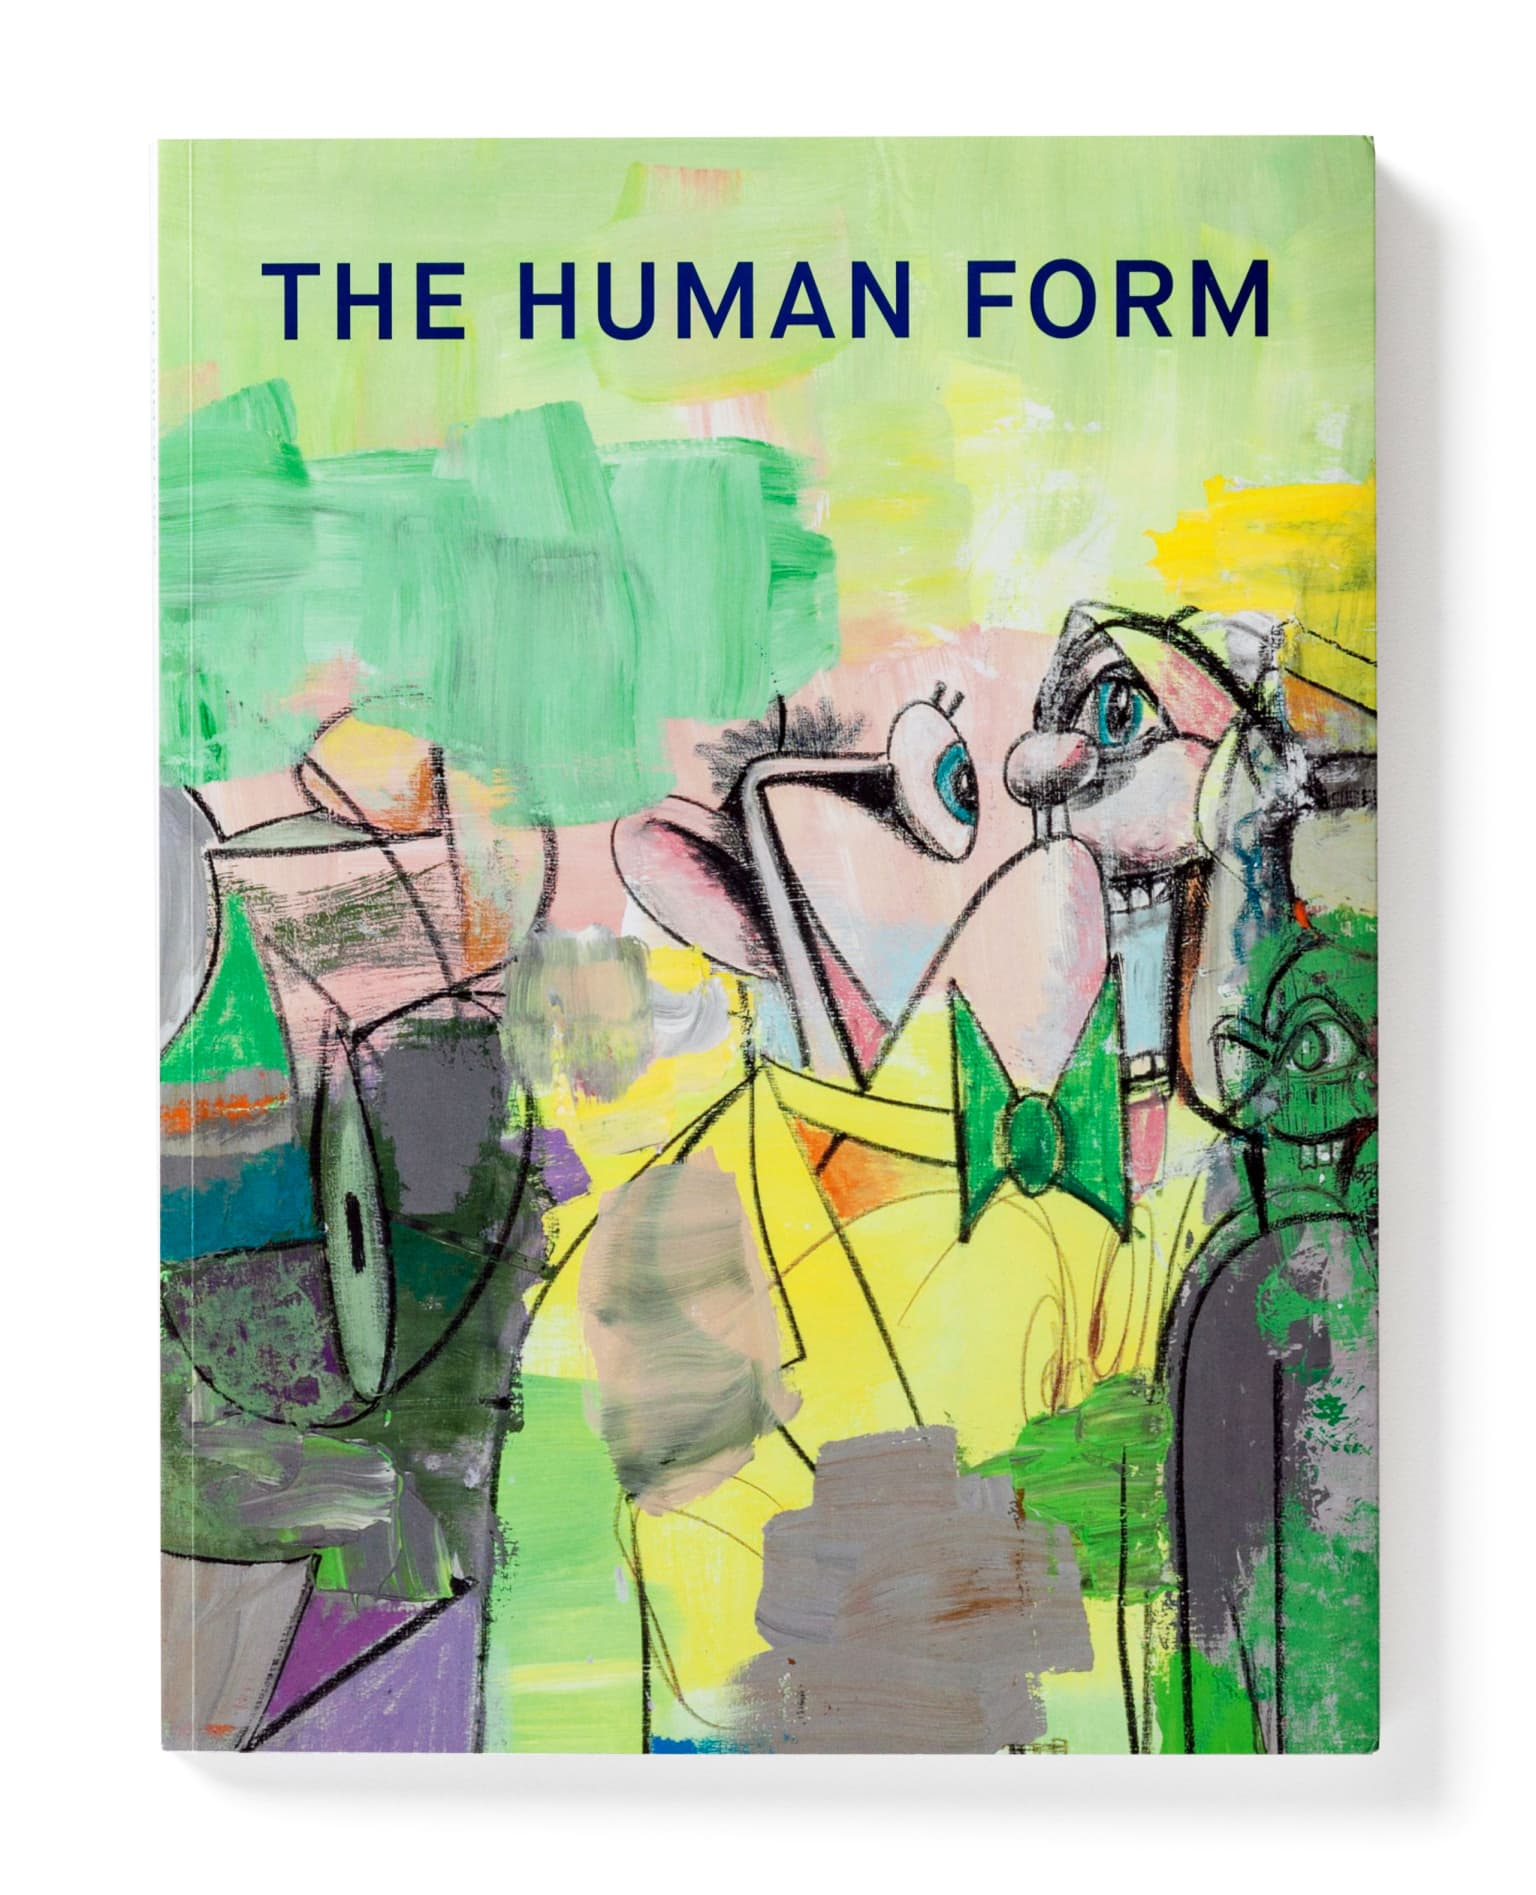 Berggruen Gallery: The Human Form